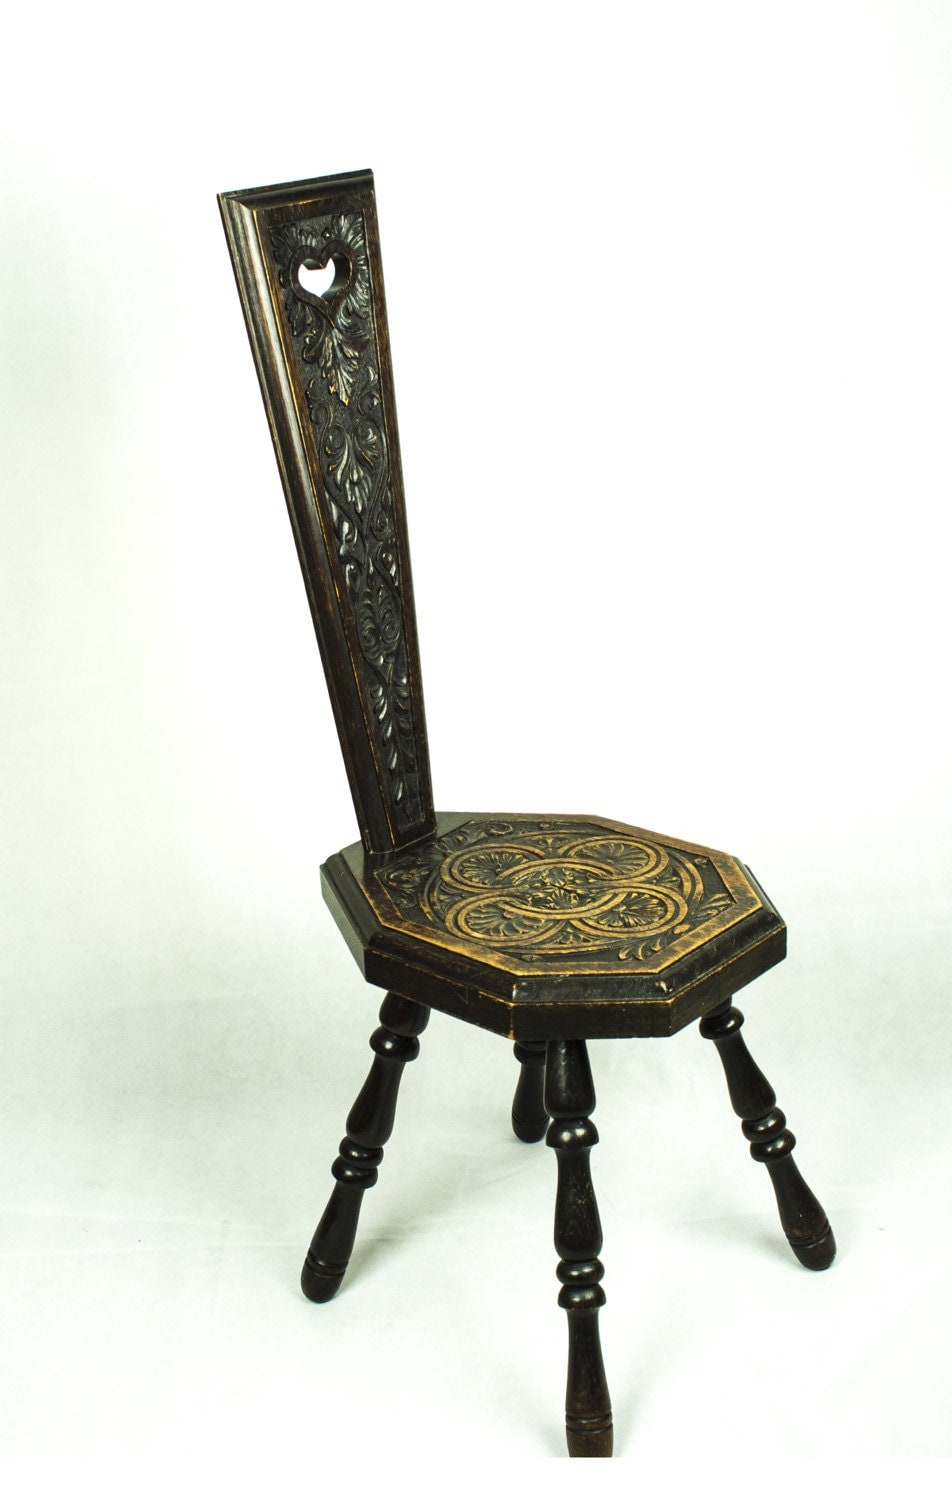 Gorgeous Antique Arts and Crafts Carved Oak Spinning Chair with a Heart Motif c1900 Made in England